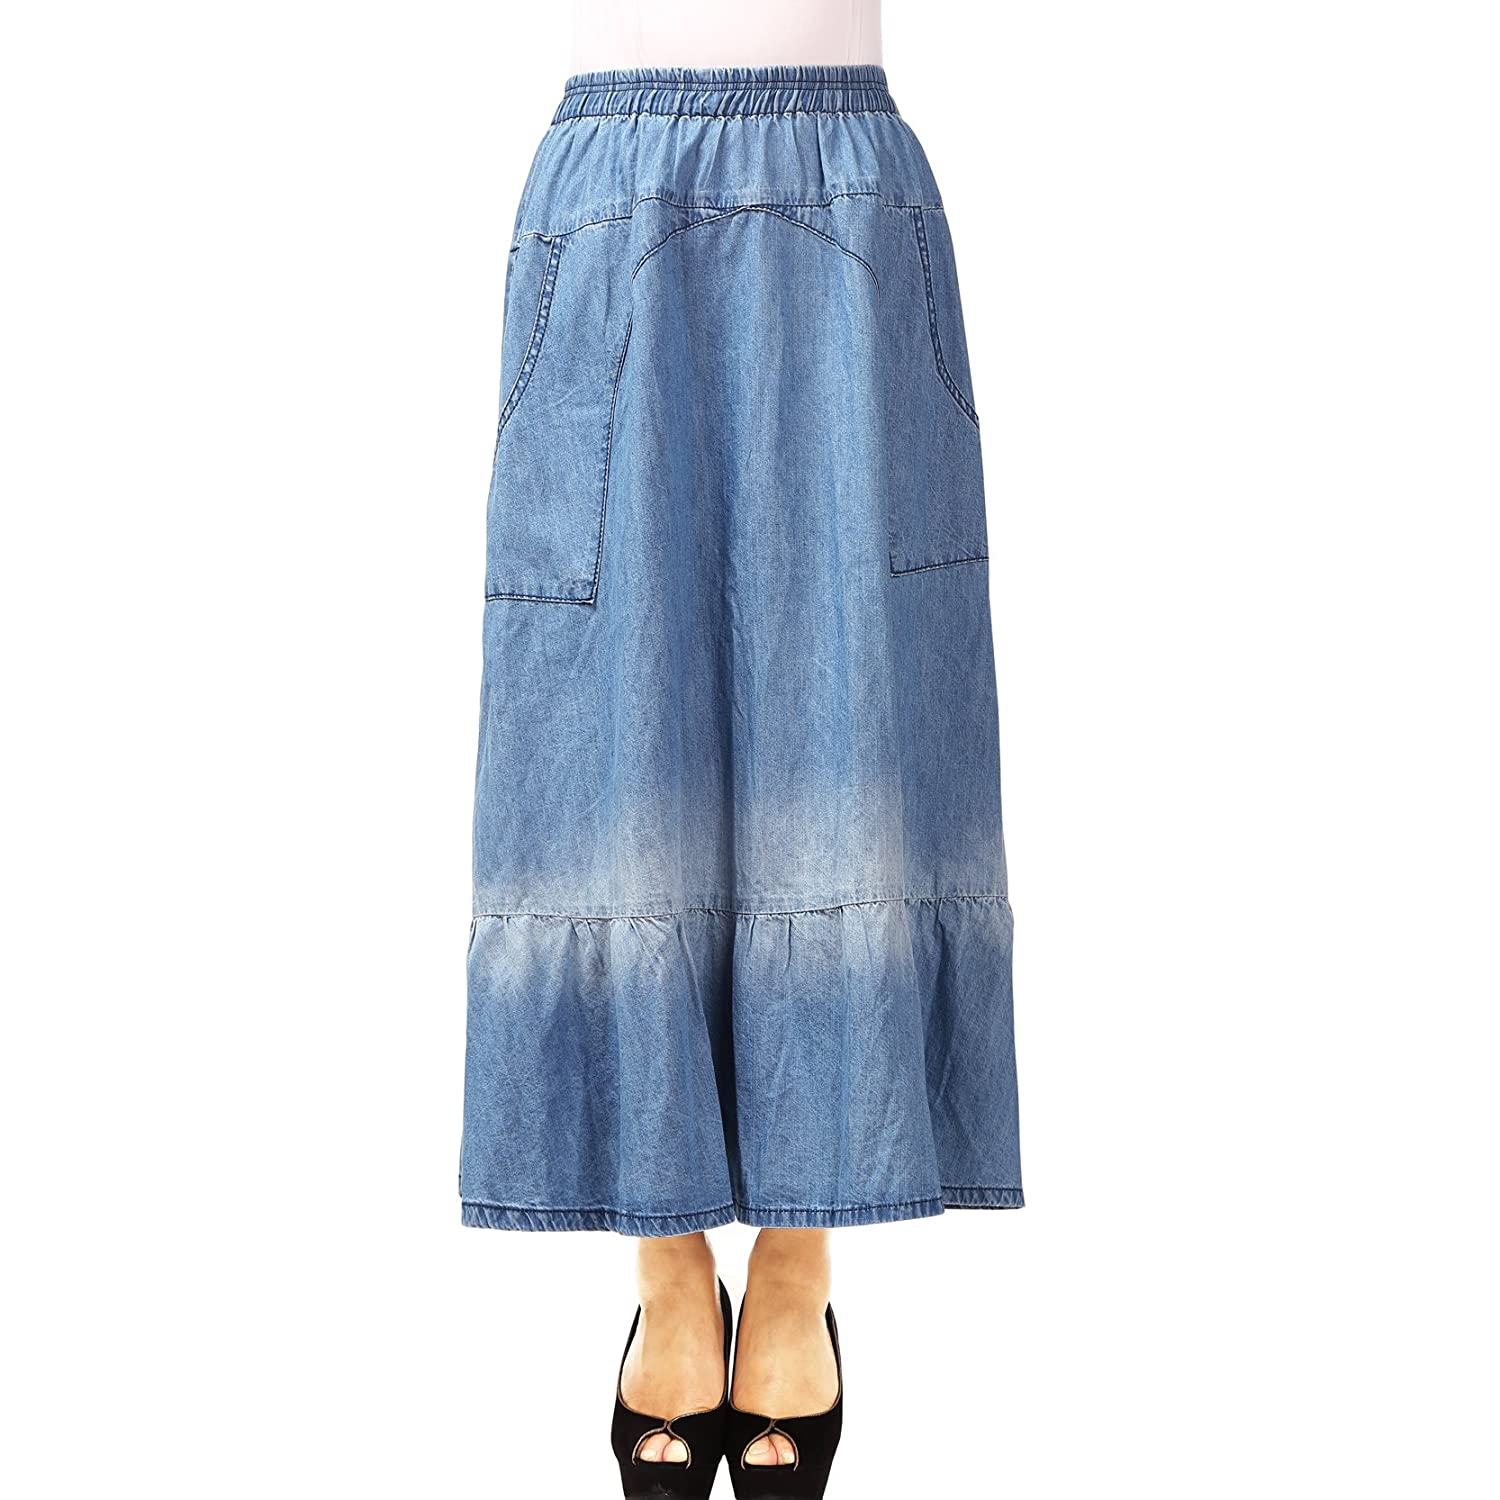 NONOSIZE Women's Ankle Length Casual Elastic Waist Blue Long Straight Skirt Denim with Pockets (S, Blue UL3257)